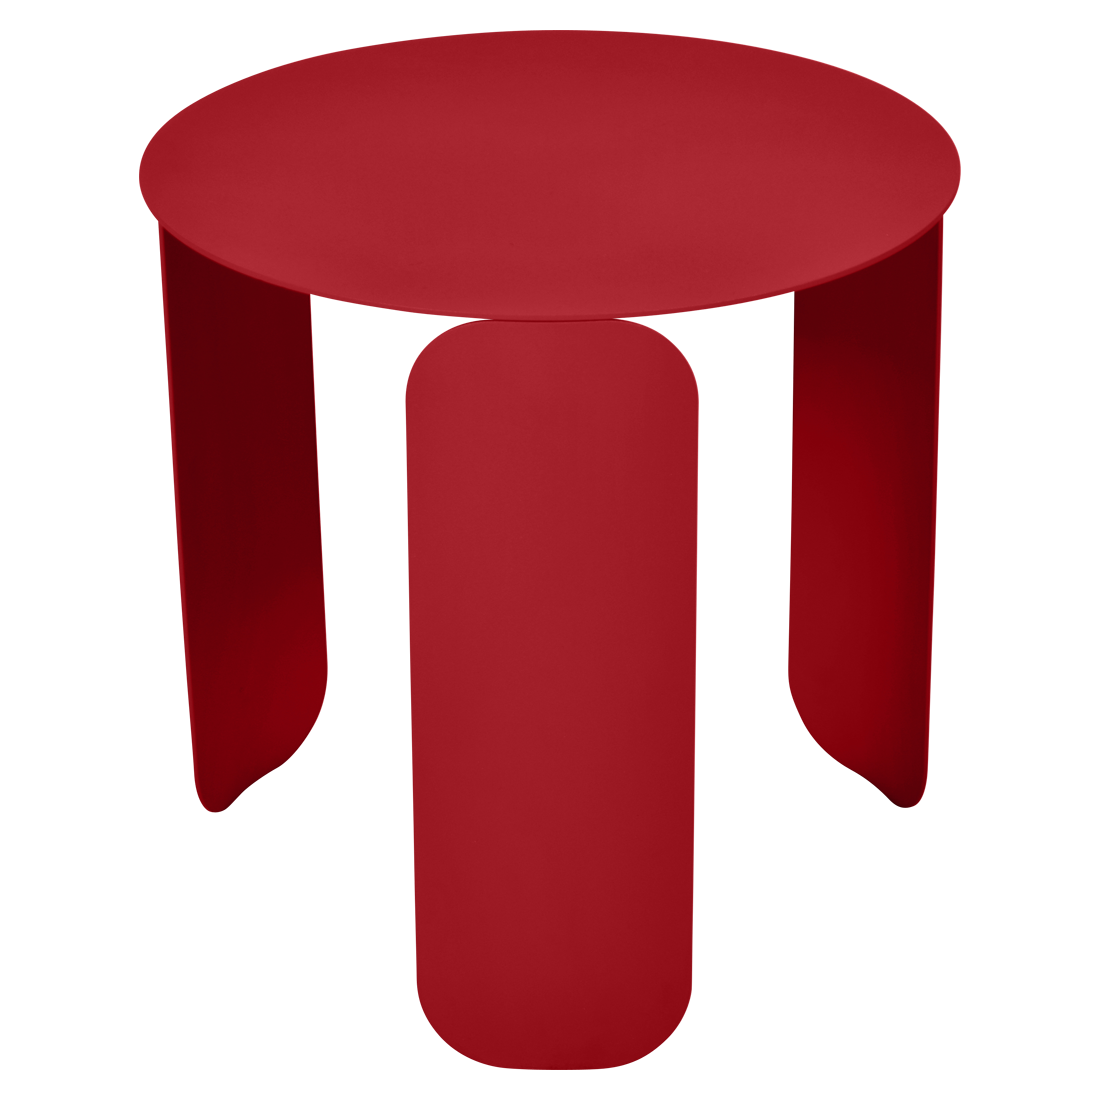 table basse design, table basse metal, table basse fermob, table basse rouge